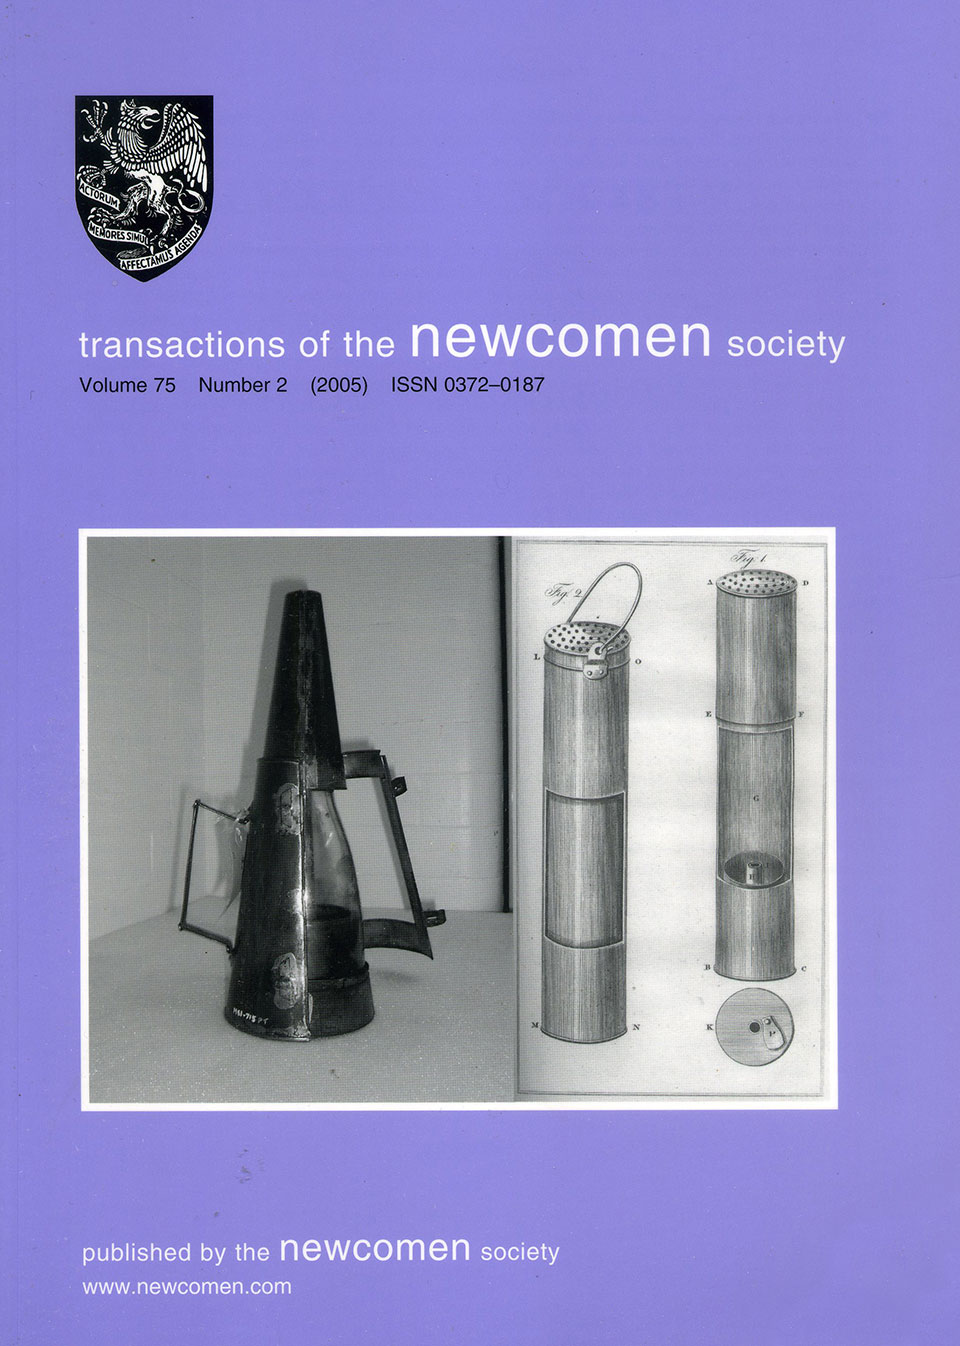 The Journal - V75 No2 2005 - cover